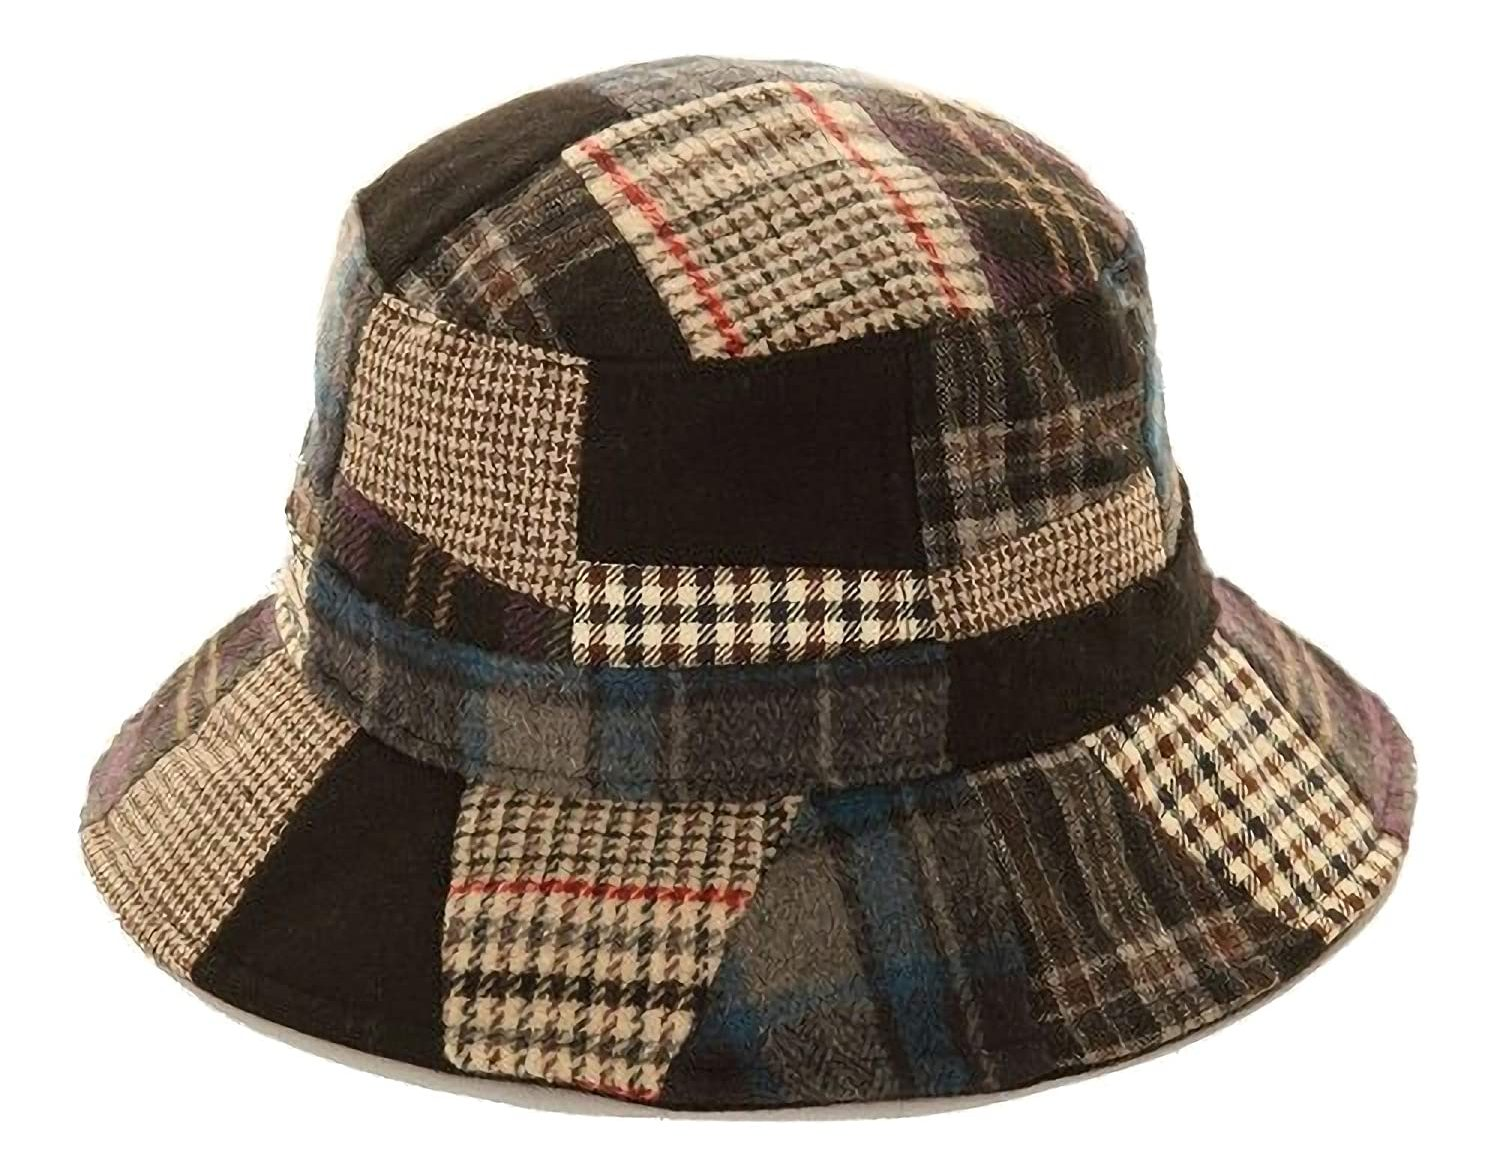 universal textiles patchwork bucket hat, casual fashion, casual outfits, casual clothes, casual wear